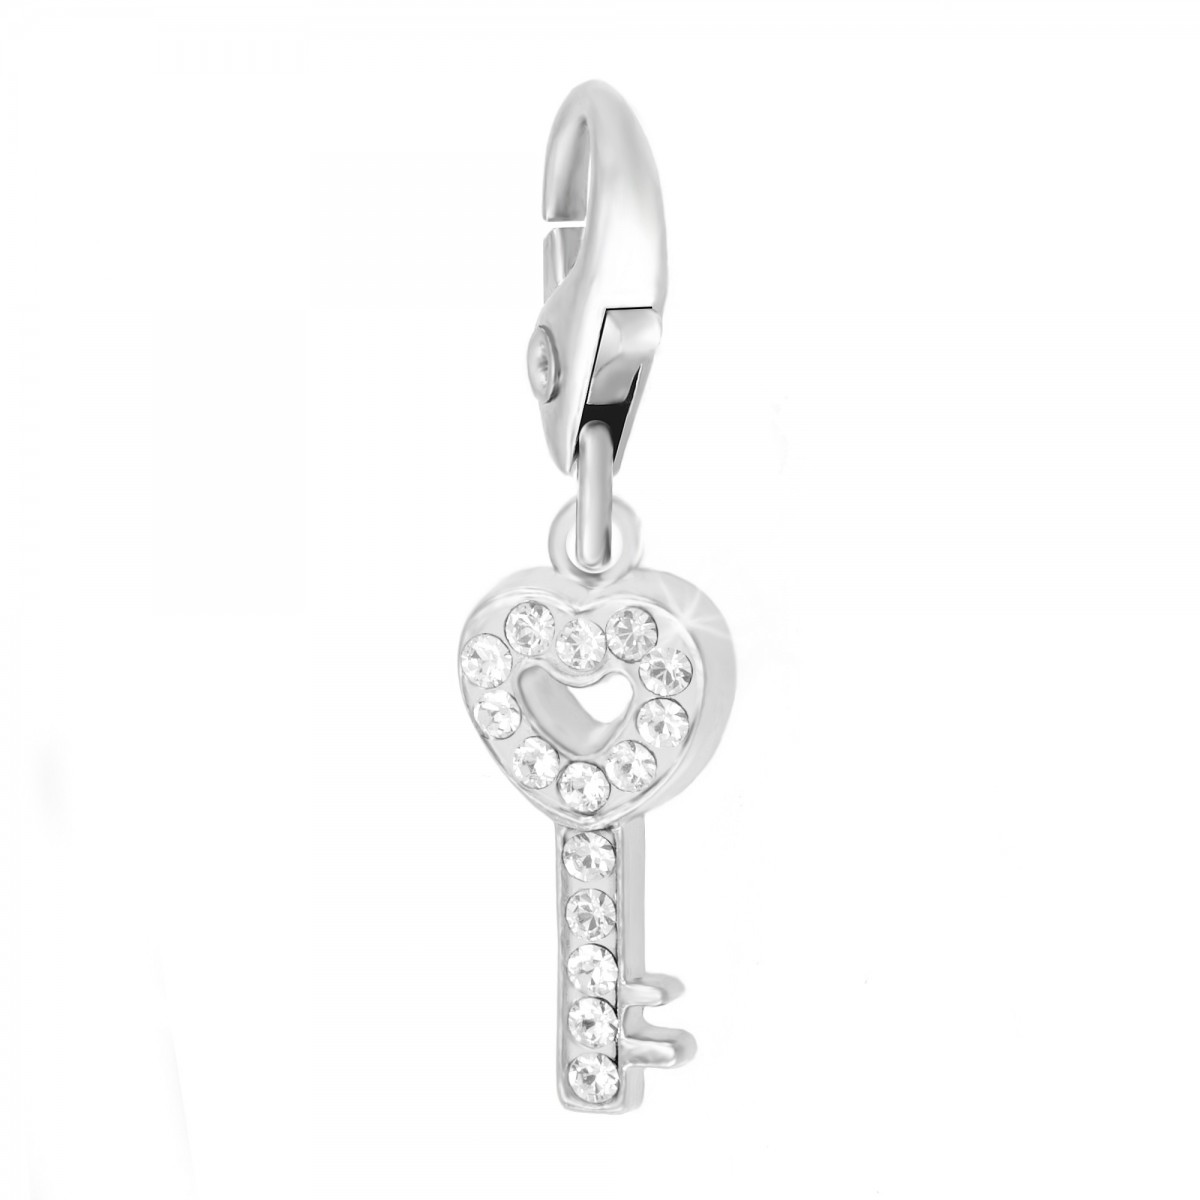 Charm Clé coeur strass So Charm made with Crystal from Swarovski